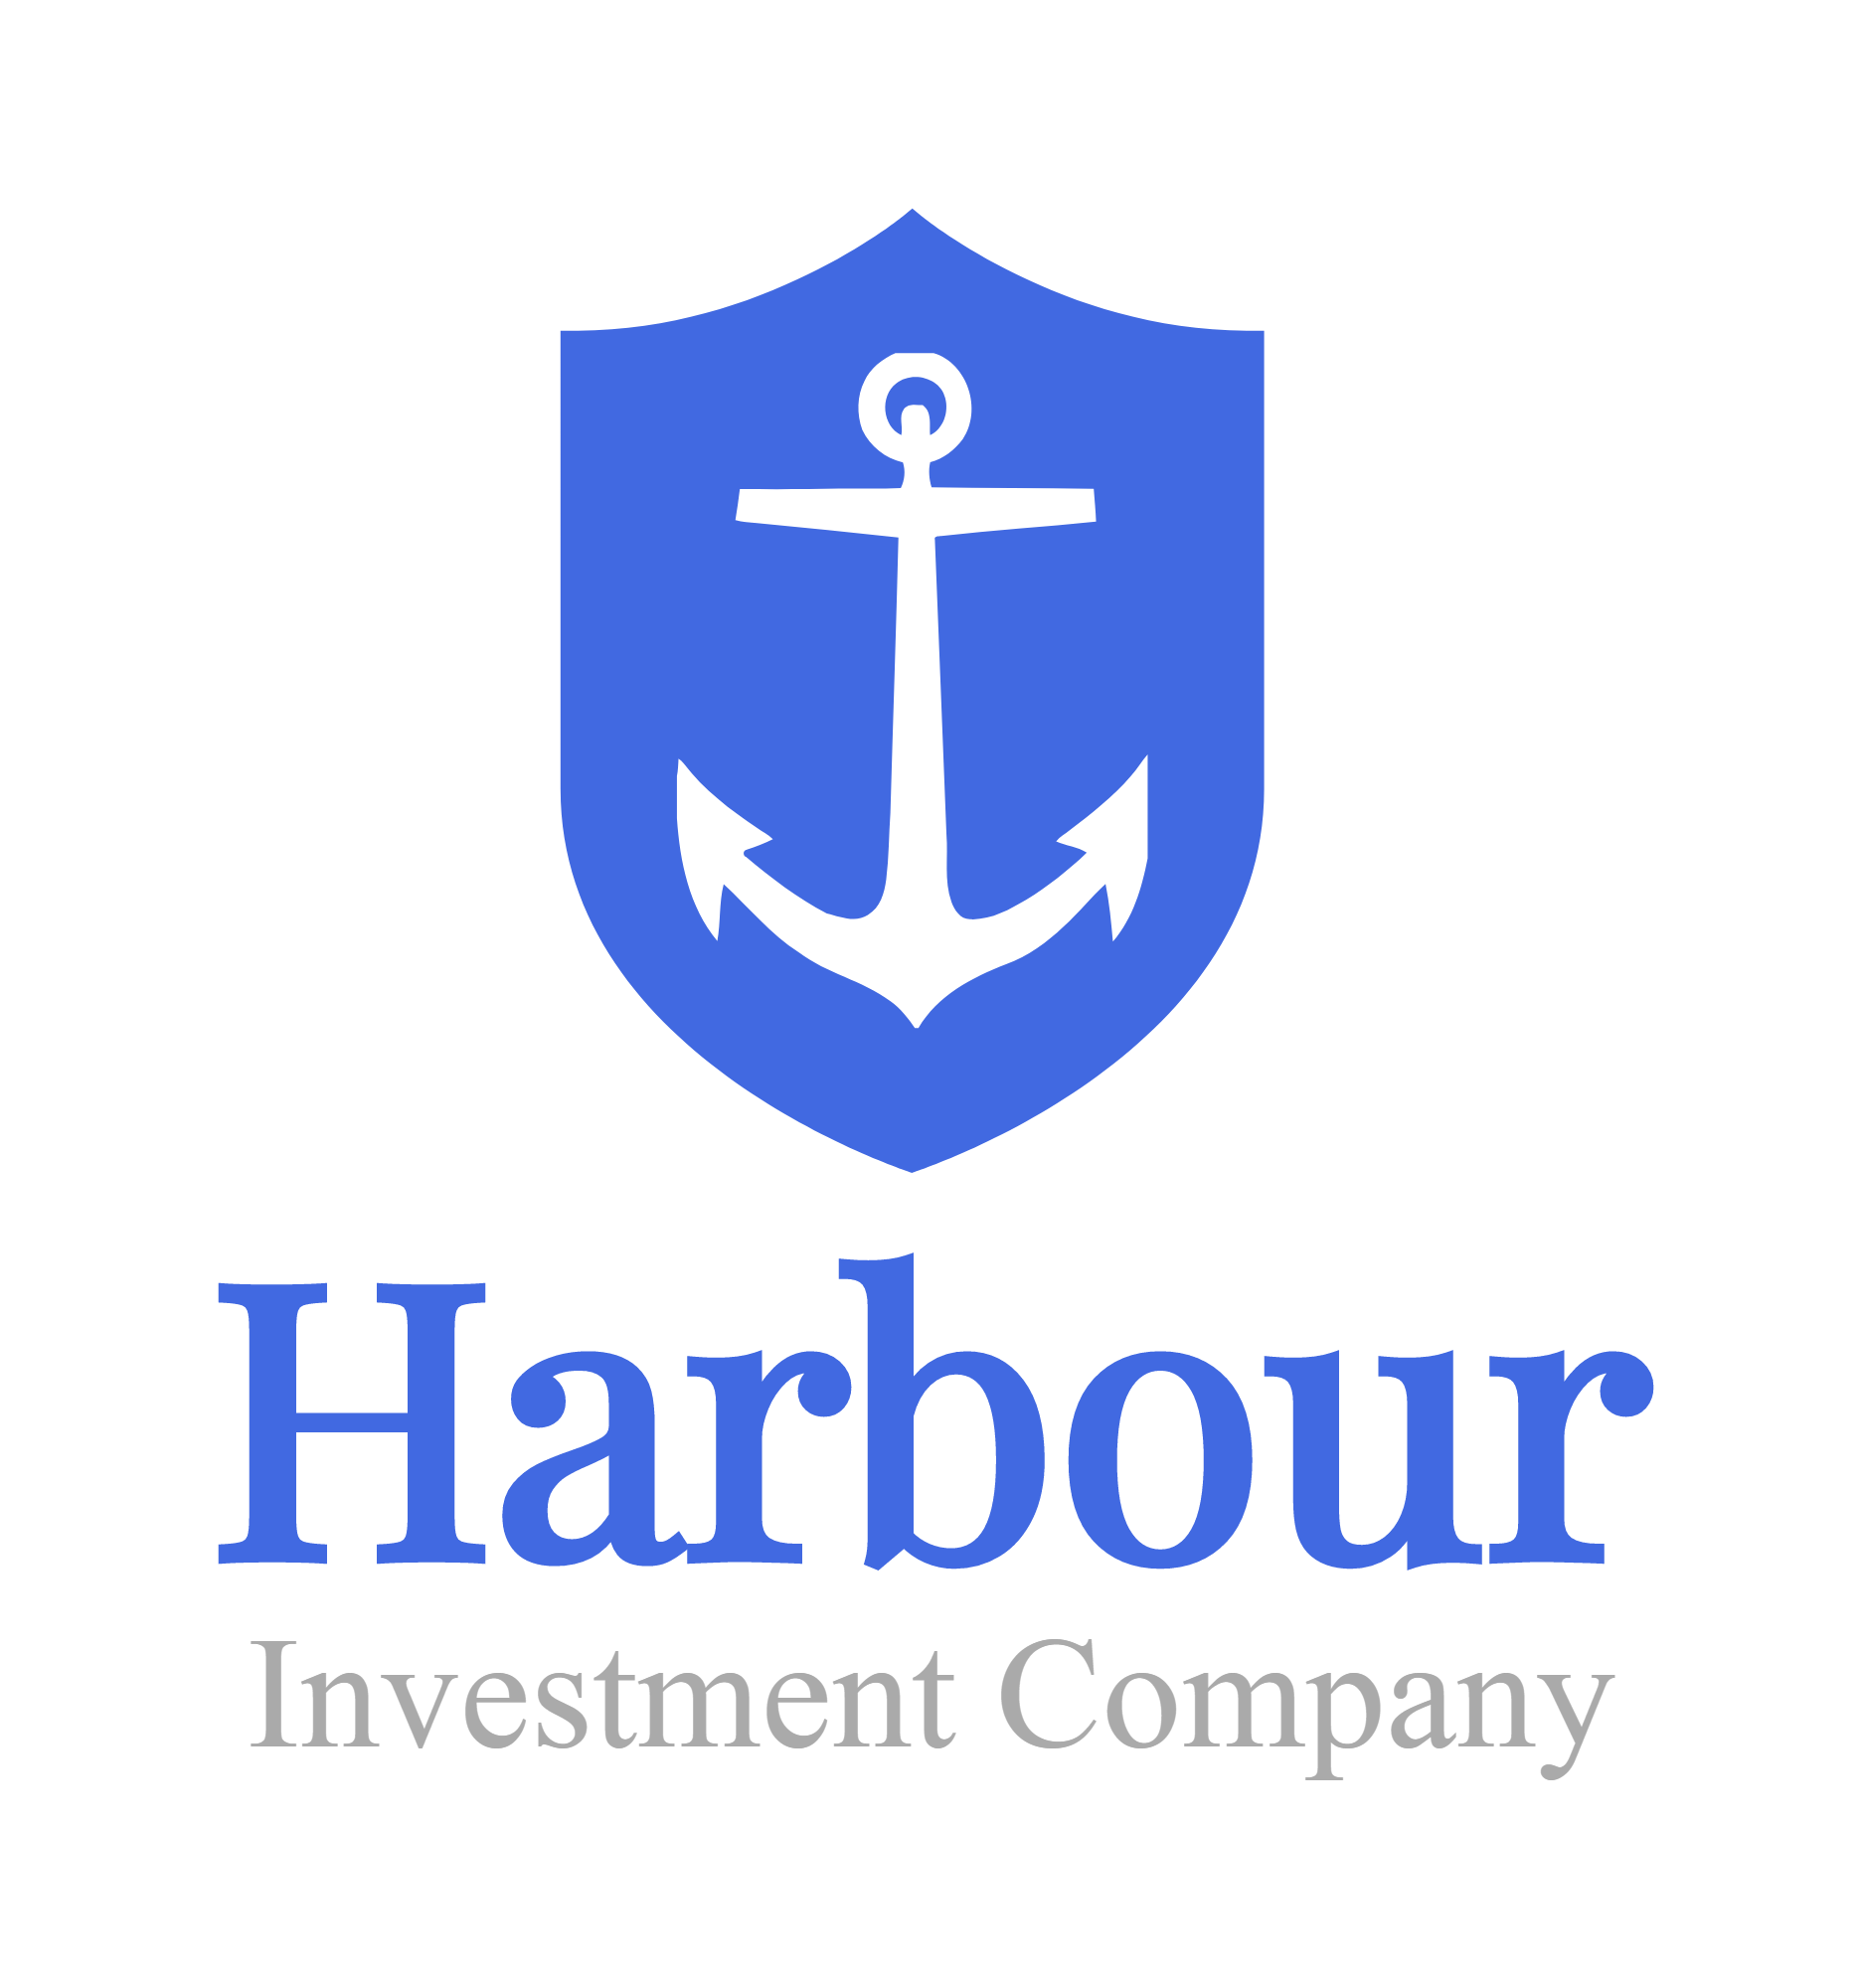 Harbour Investment Company logo